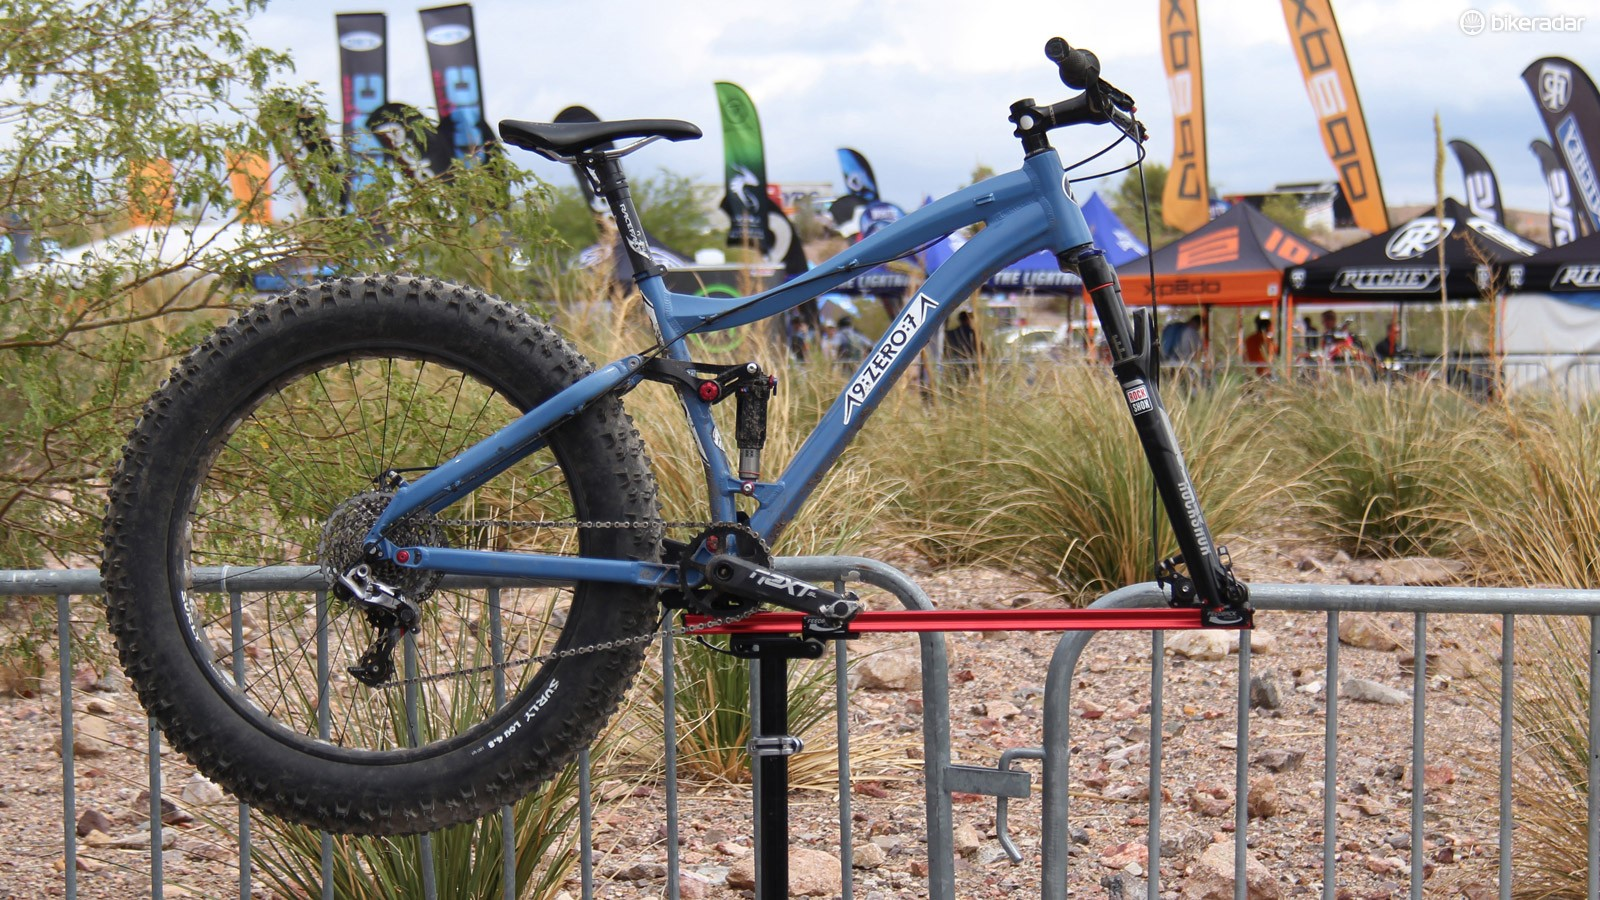 The Alaska-based company 9:Zero:7 is developing its first full suspension model